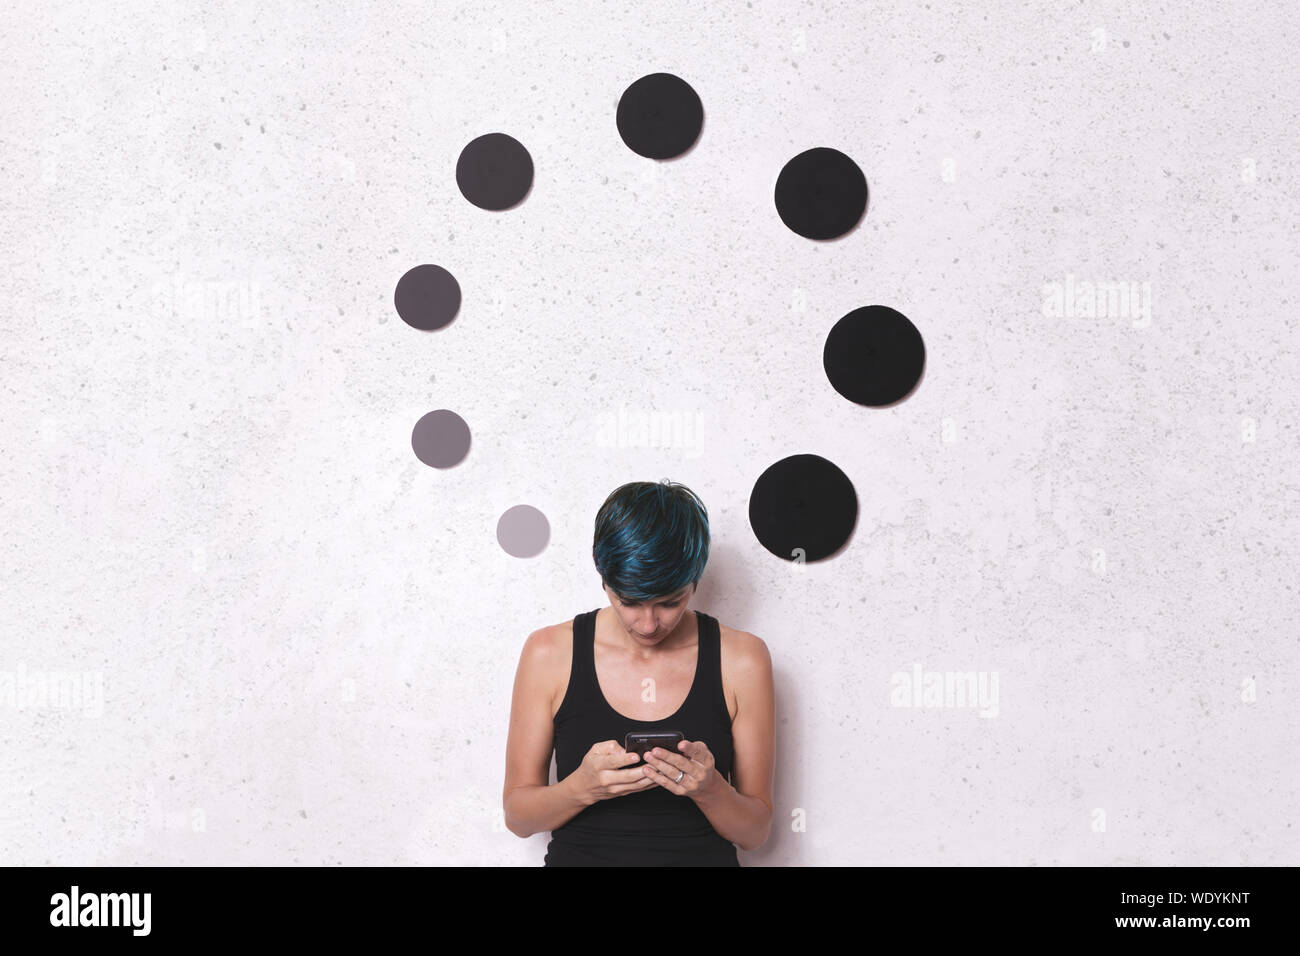 Woman Using Phone While Standing By Circular Shape Decorations On Wall Stock Photo